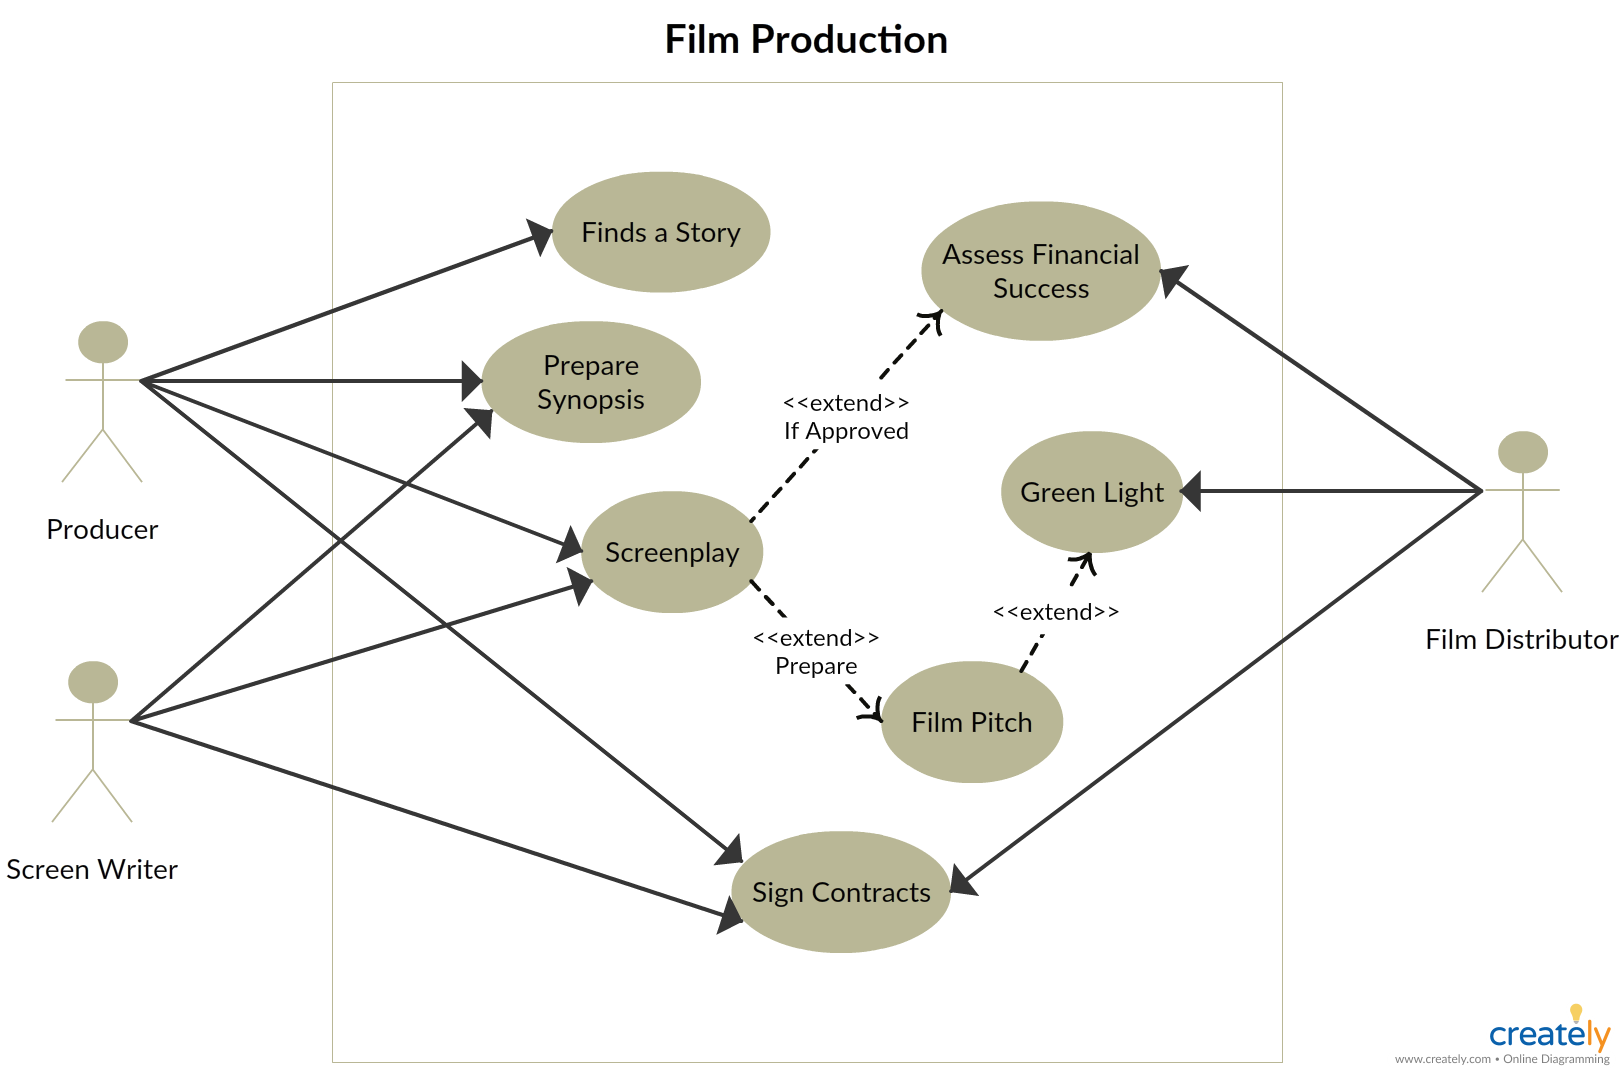 Use Case Diagram Of Film Production You Can Click On The Image To Use This As A Template Or Download Use Case Diagram Tutorial